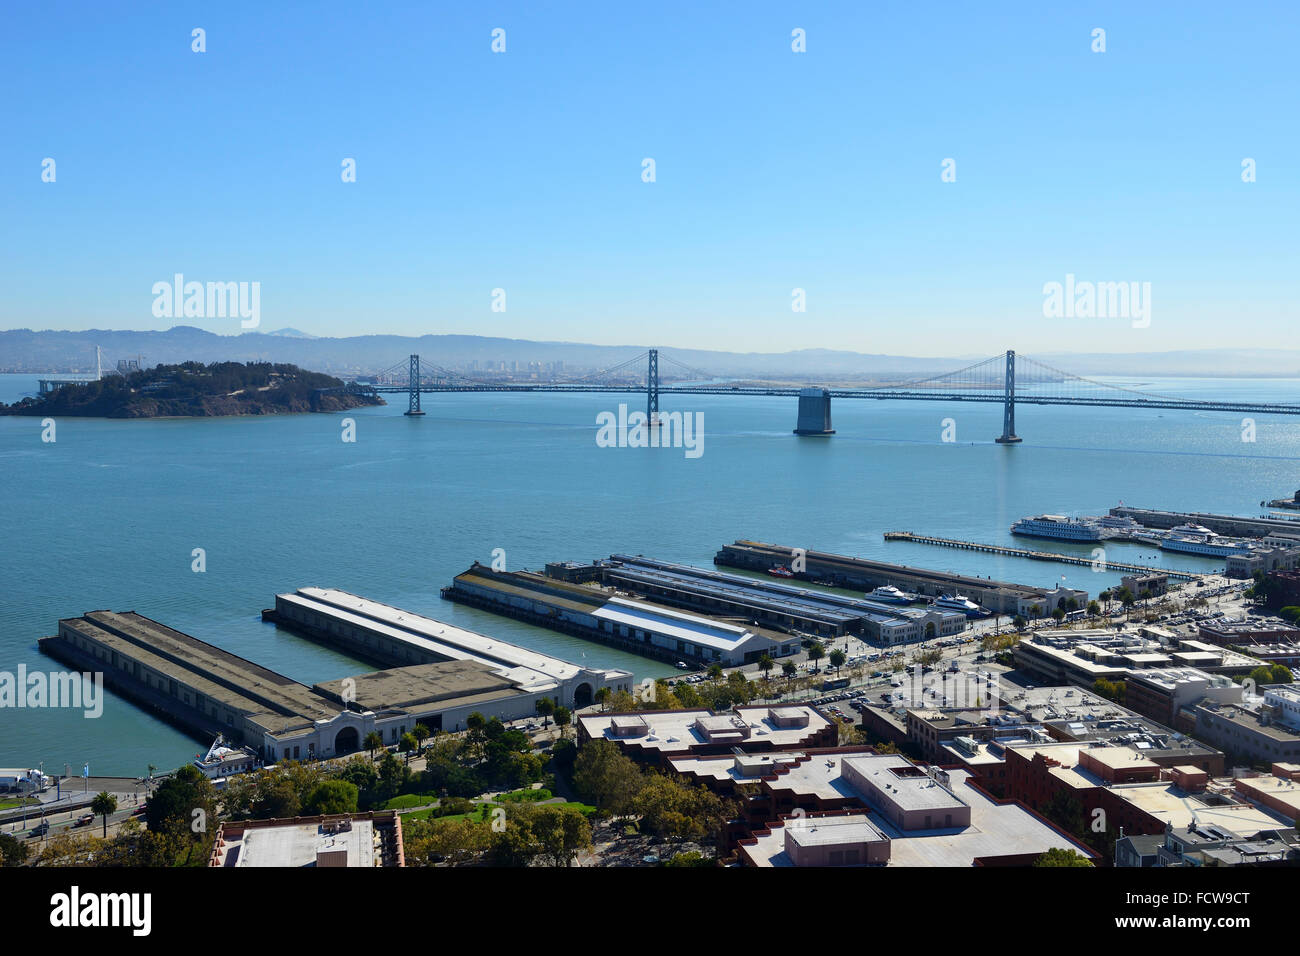 Elevated view of Bay Bridge and Ferry Terminals from Coit Tower on Telegraph Hill, San Francisco, California, USA - Stock Image